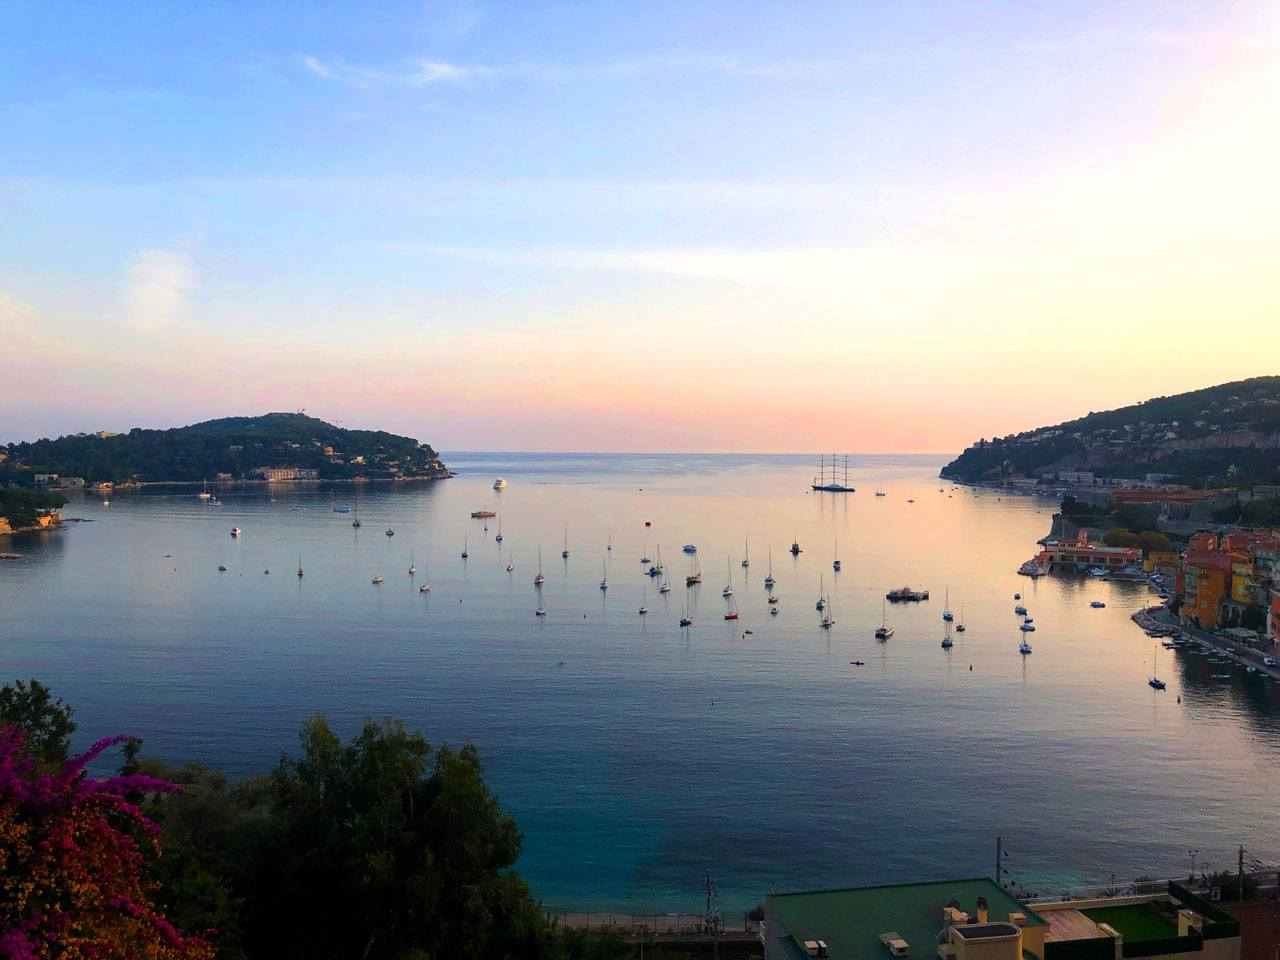 Swimming in the Bay of Villefranche